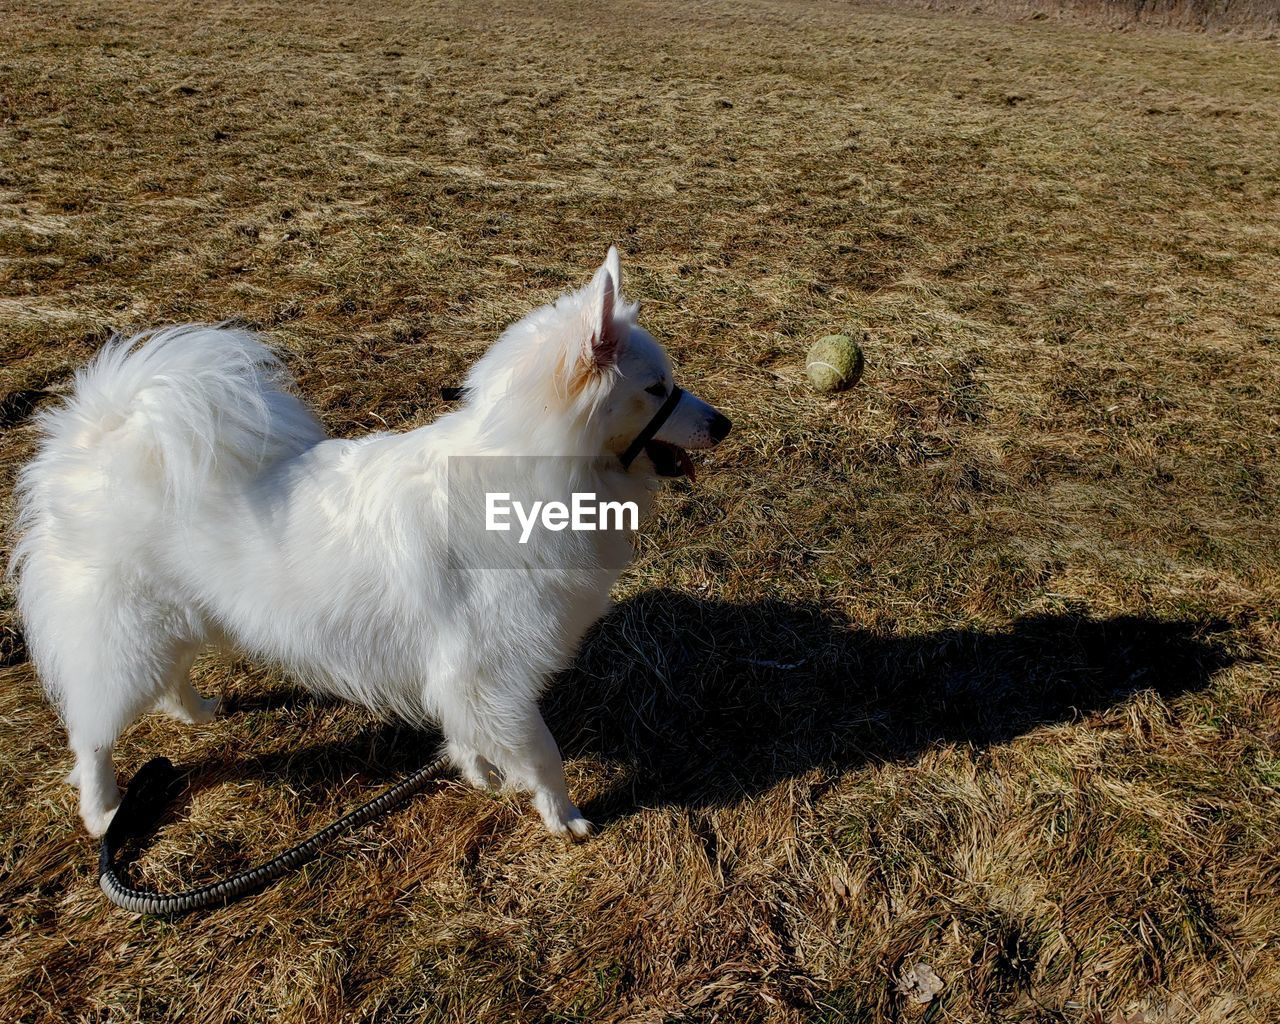 domestic, pets, domestic animals, animal themes, animal, one animal, mammal, vertebrate, dog, canine, field, land, nature, no people, white color, grass, high angle view, sunlight, looking, side view, mouth open